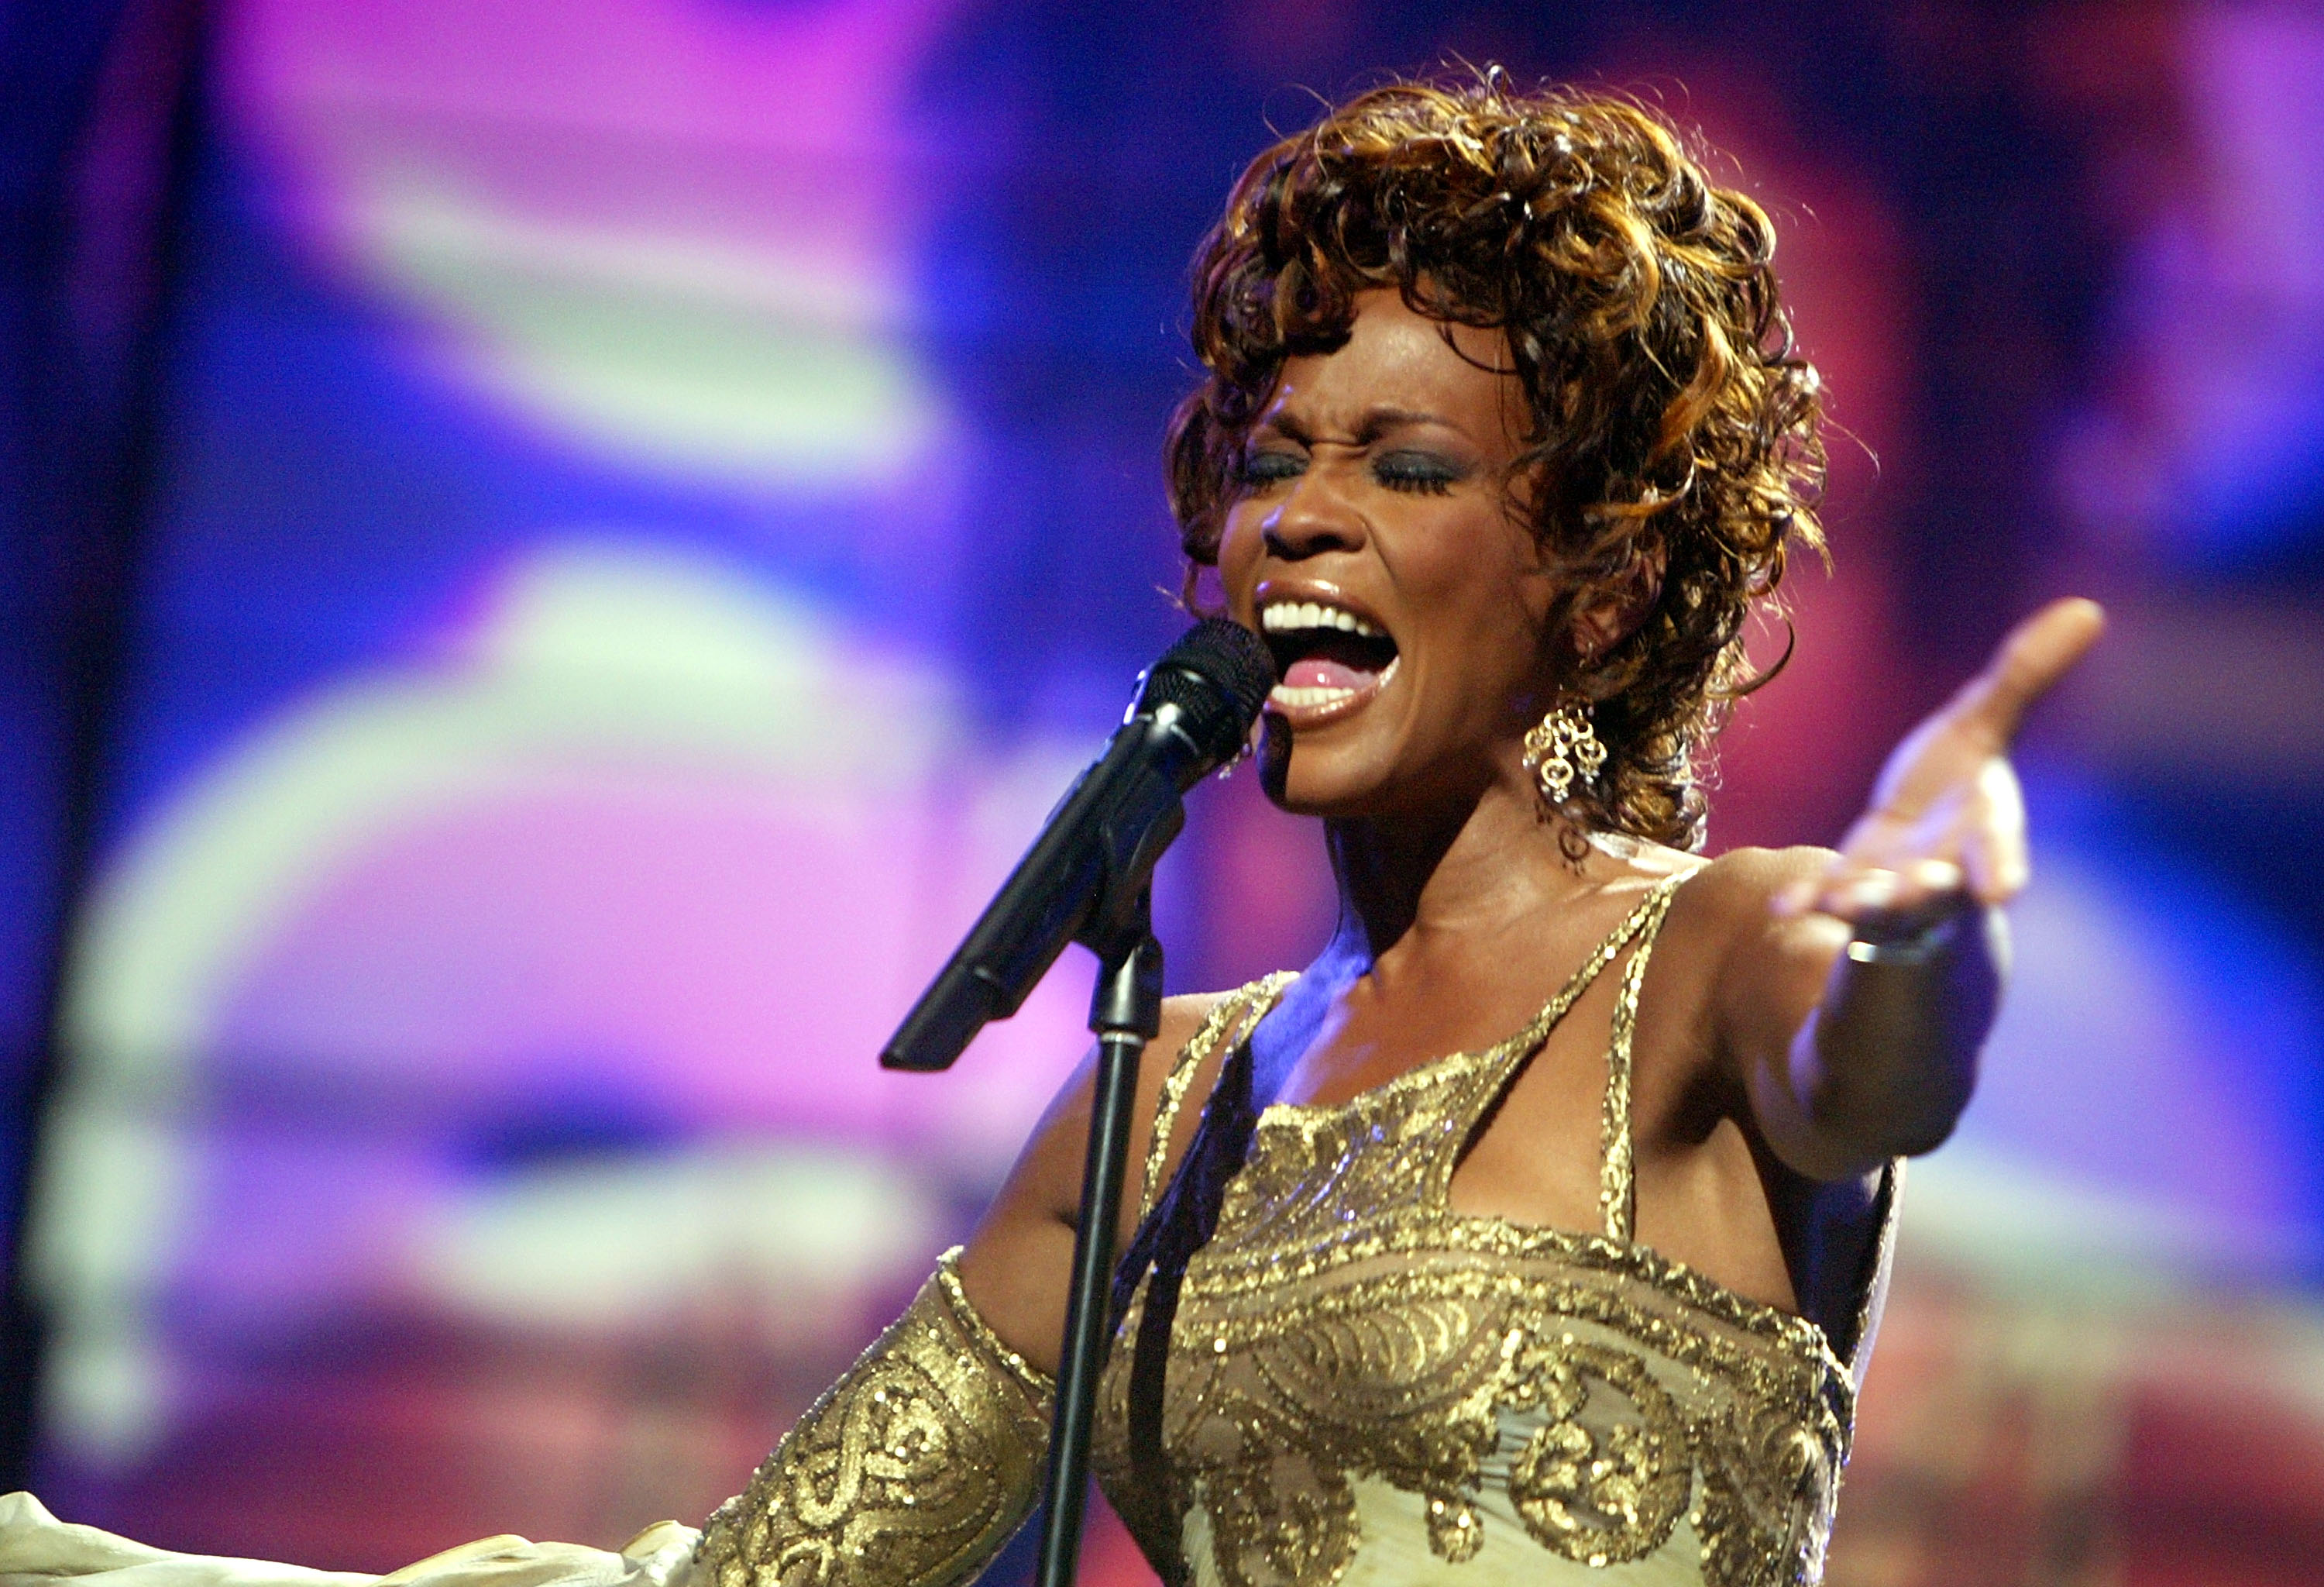 Whitney Houston Hologram Concert to Come to Las Vegas in October